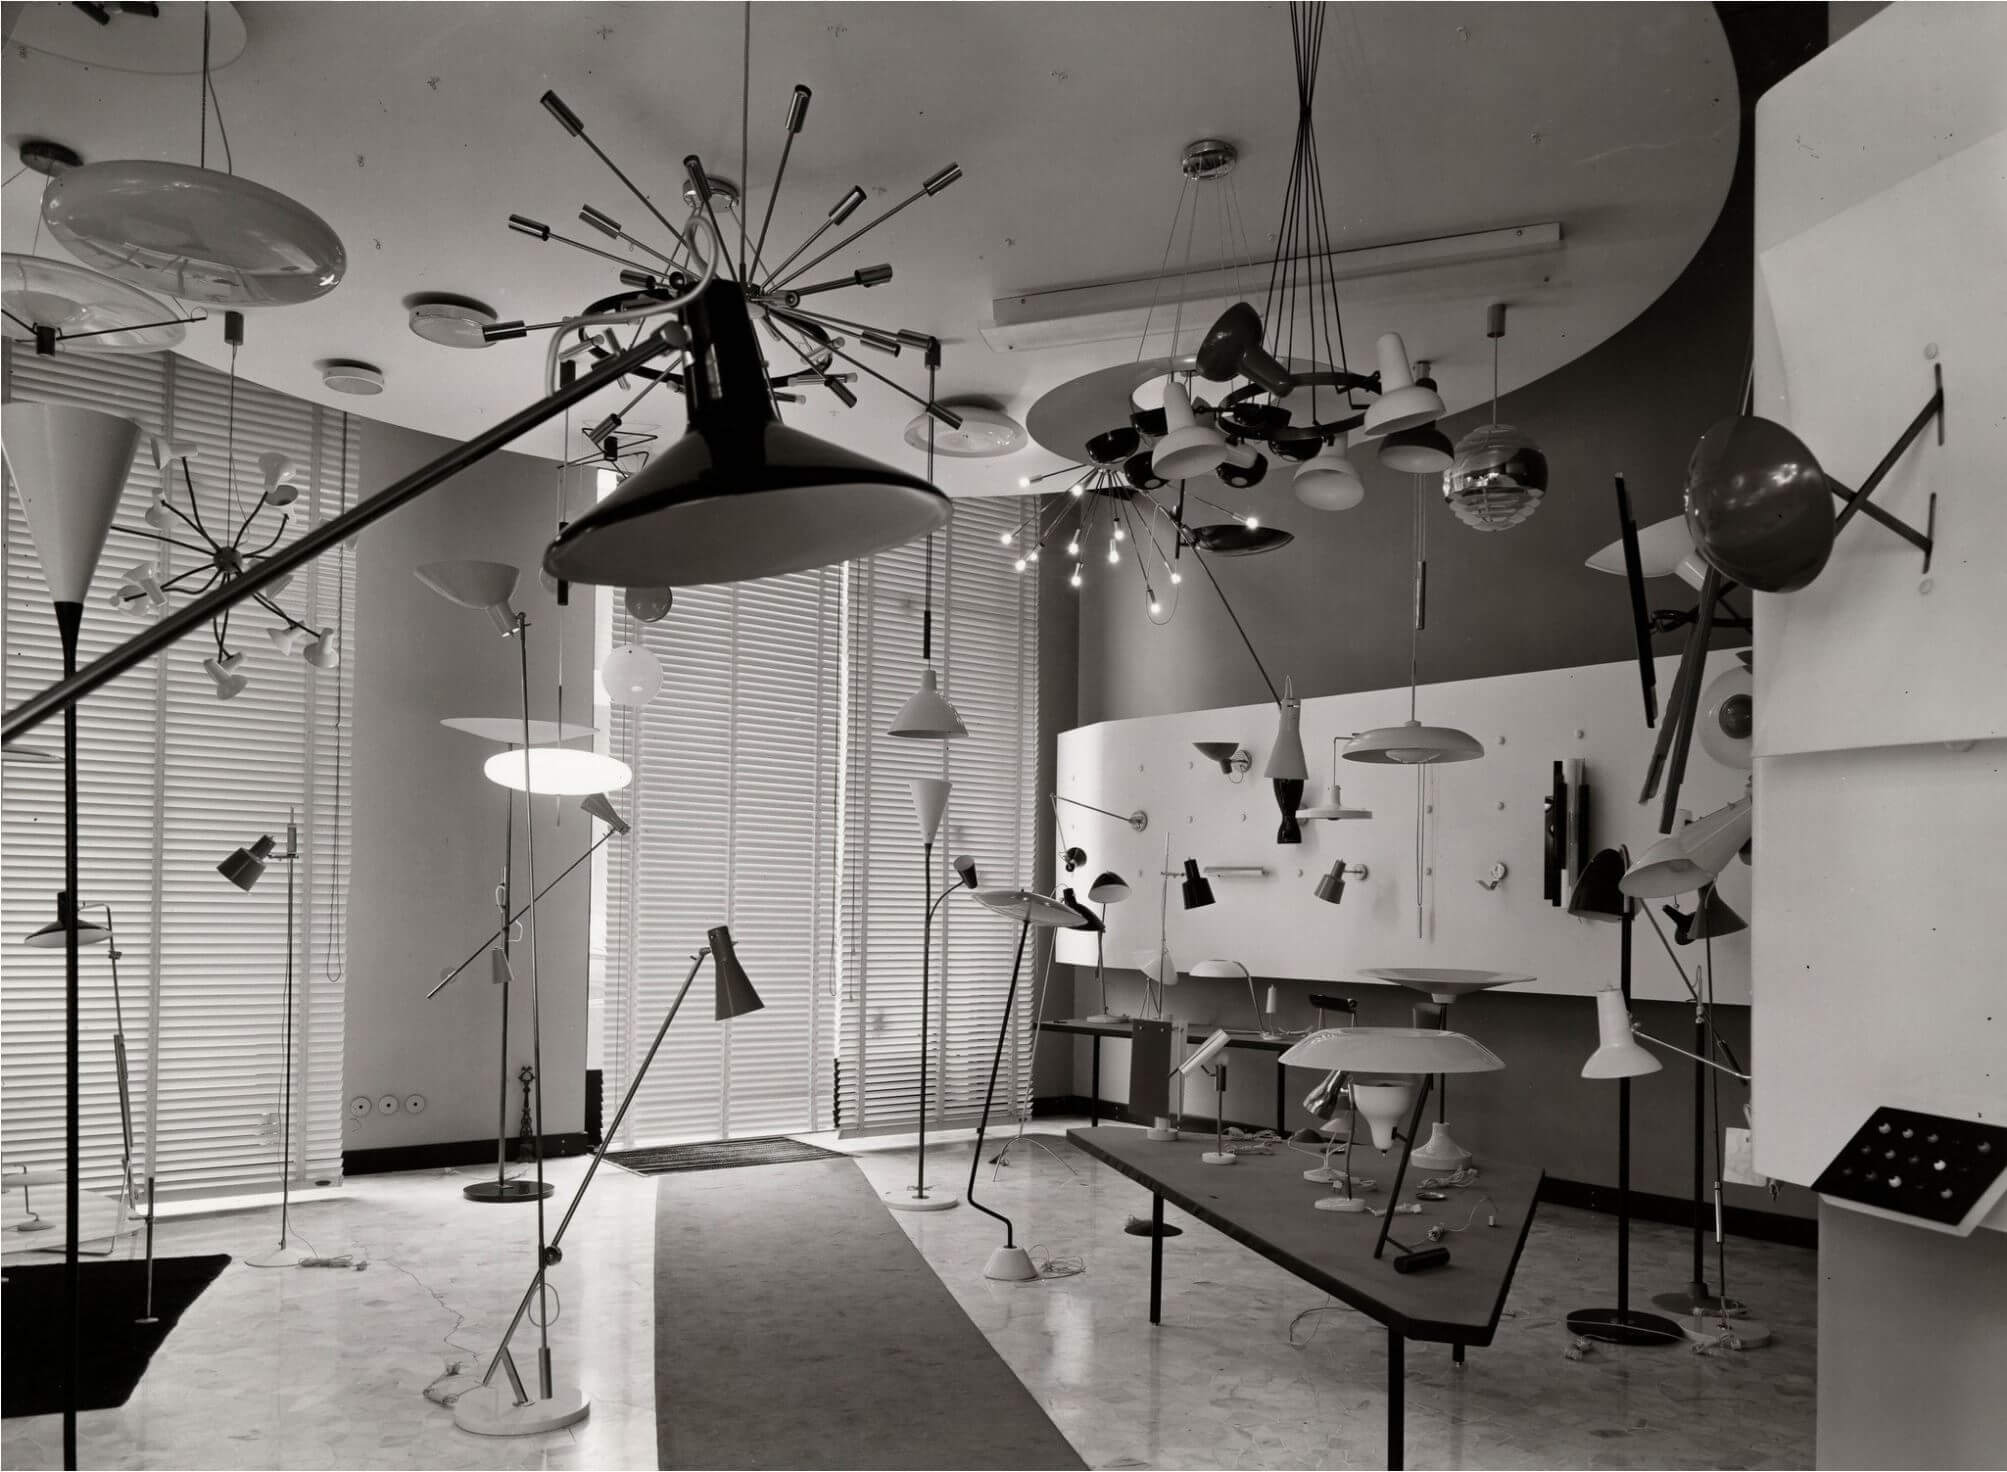 The Arteluce store on Corso Matteotti in Milan in 1963 Image Credit: Flos Archive